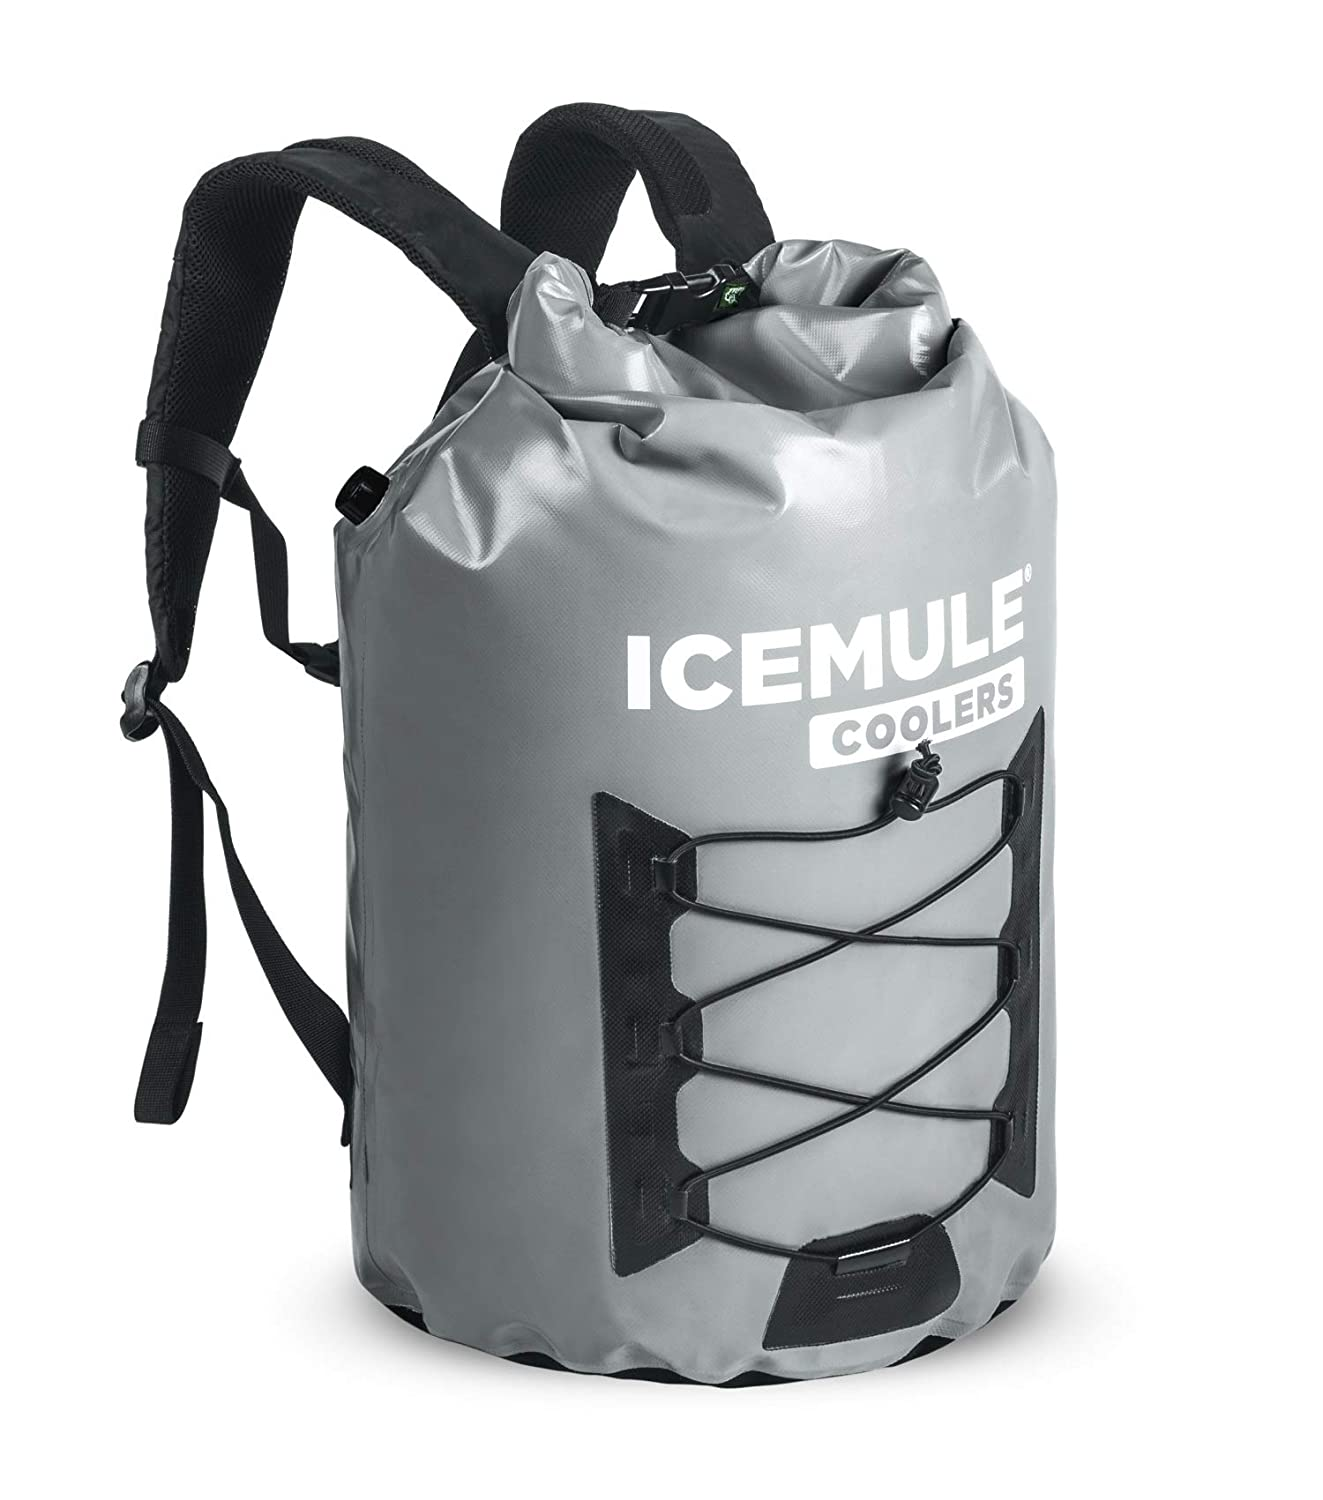 91d6fd32b IceMule Pro Insulated Backpack Cooler Bag - Hands-Free, Highly-Portable,  Collapsible, Waterproof and Soft-Sided Cooler Backpack for Hiking, The  Beach, ...